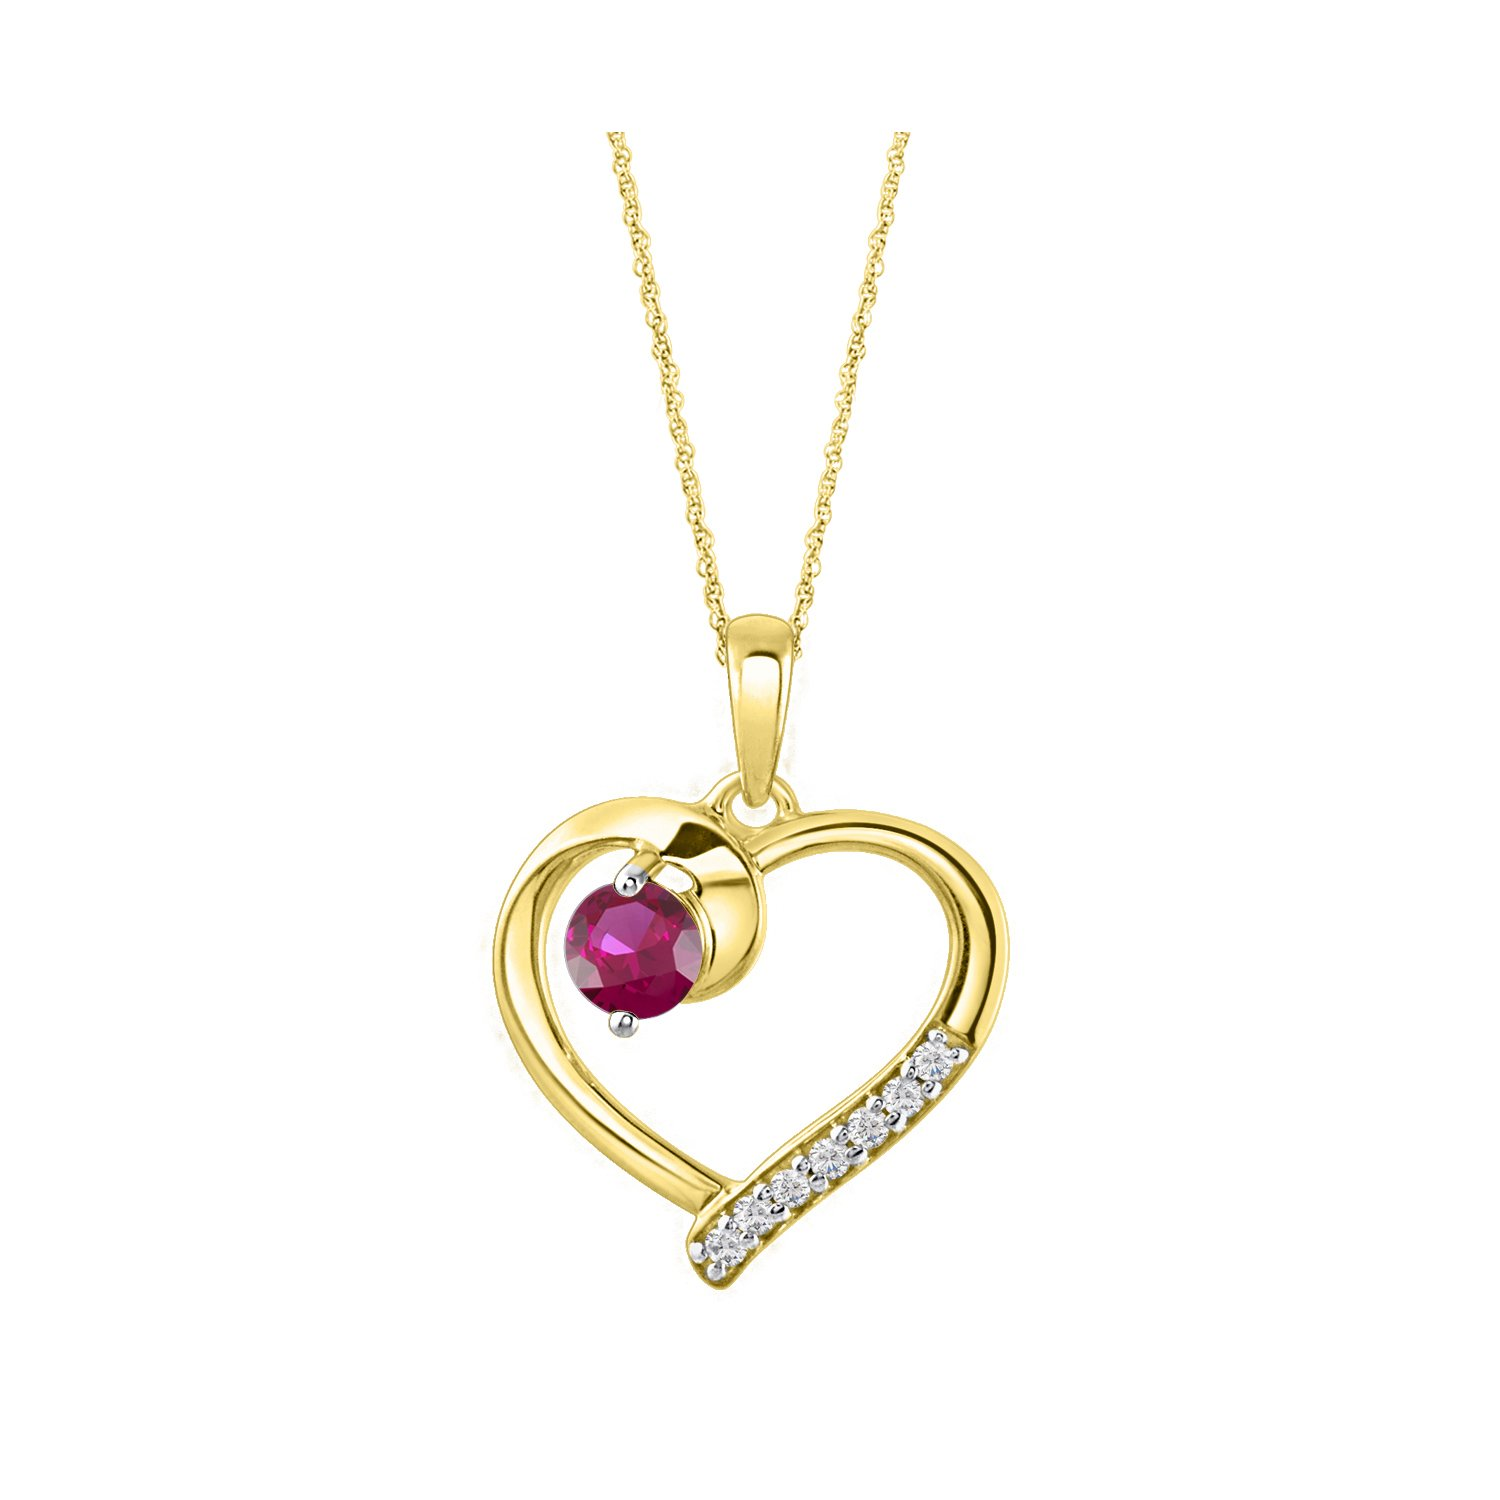 DiscountHouse4you 14k Yellow Gold Plated 5mm 0.60 ct Simulated Ruby /& White CZ Solitaire Pendant Necklace for Women Girls